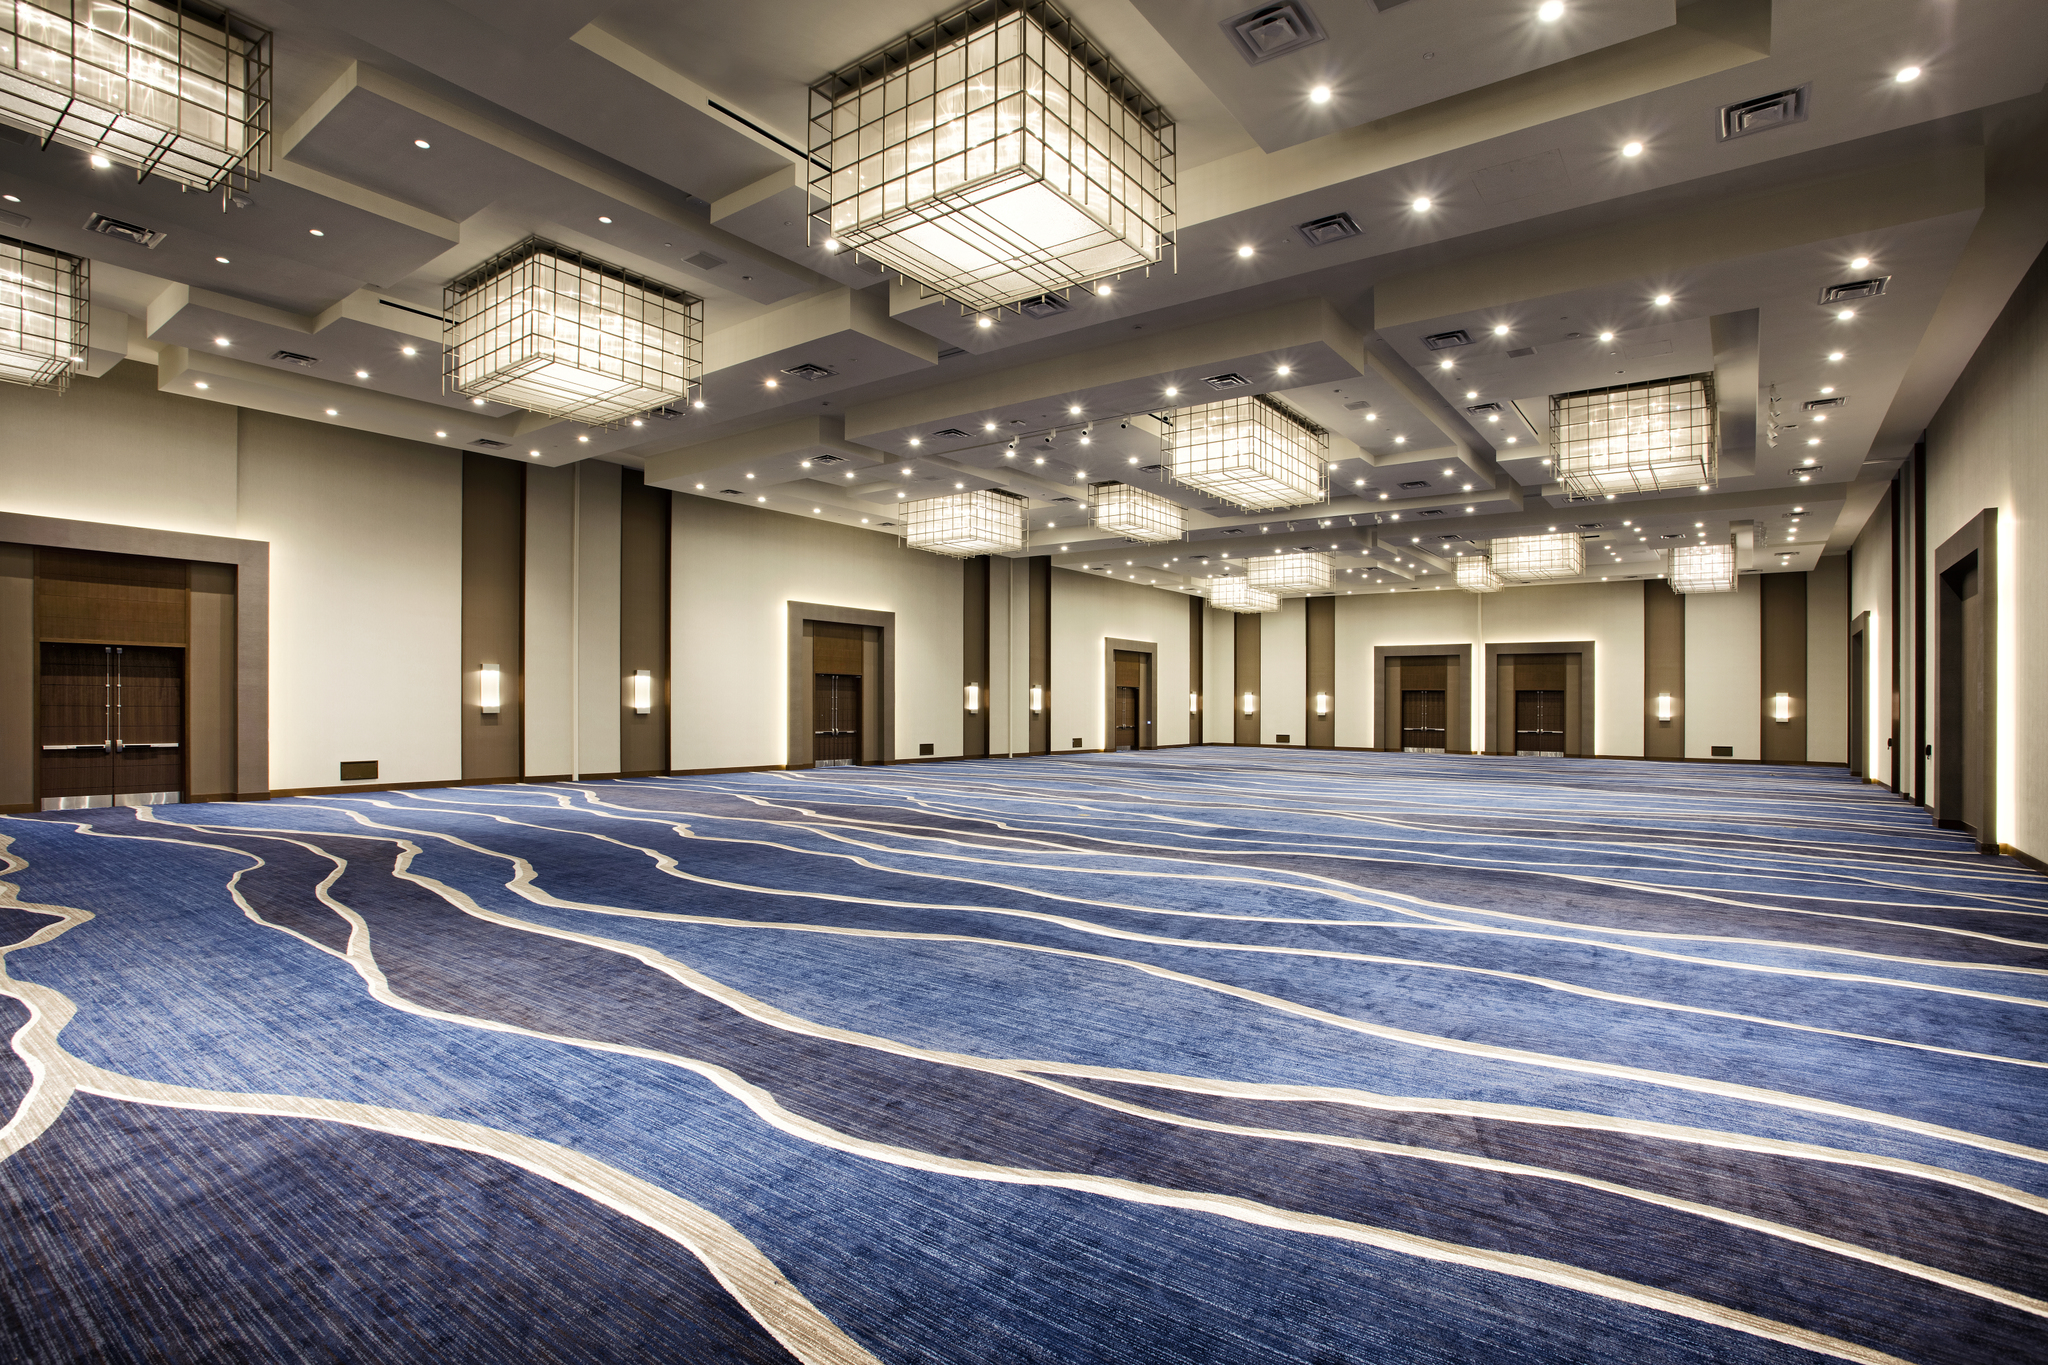 Brintons created a unique carpet pattern for the Ocean Ballroom at the Hilton West Palm Beach.